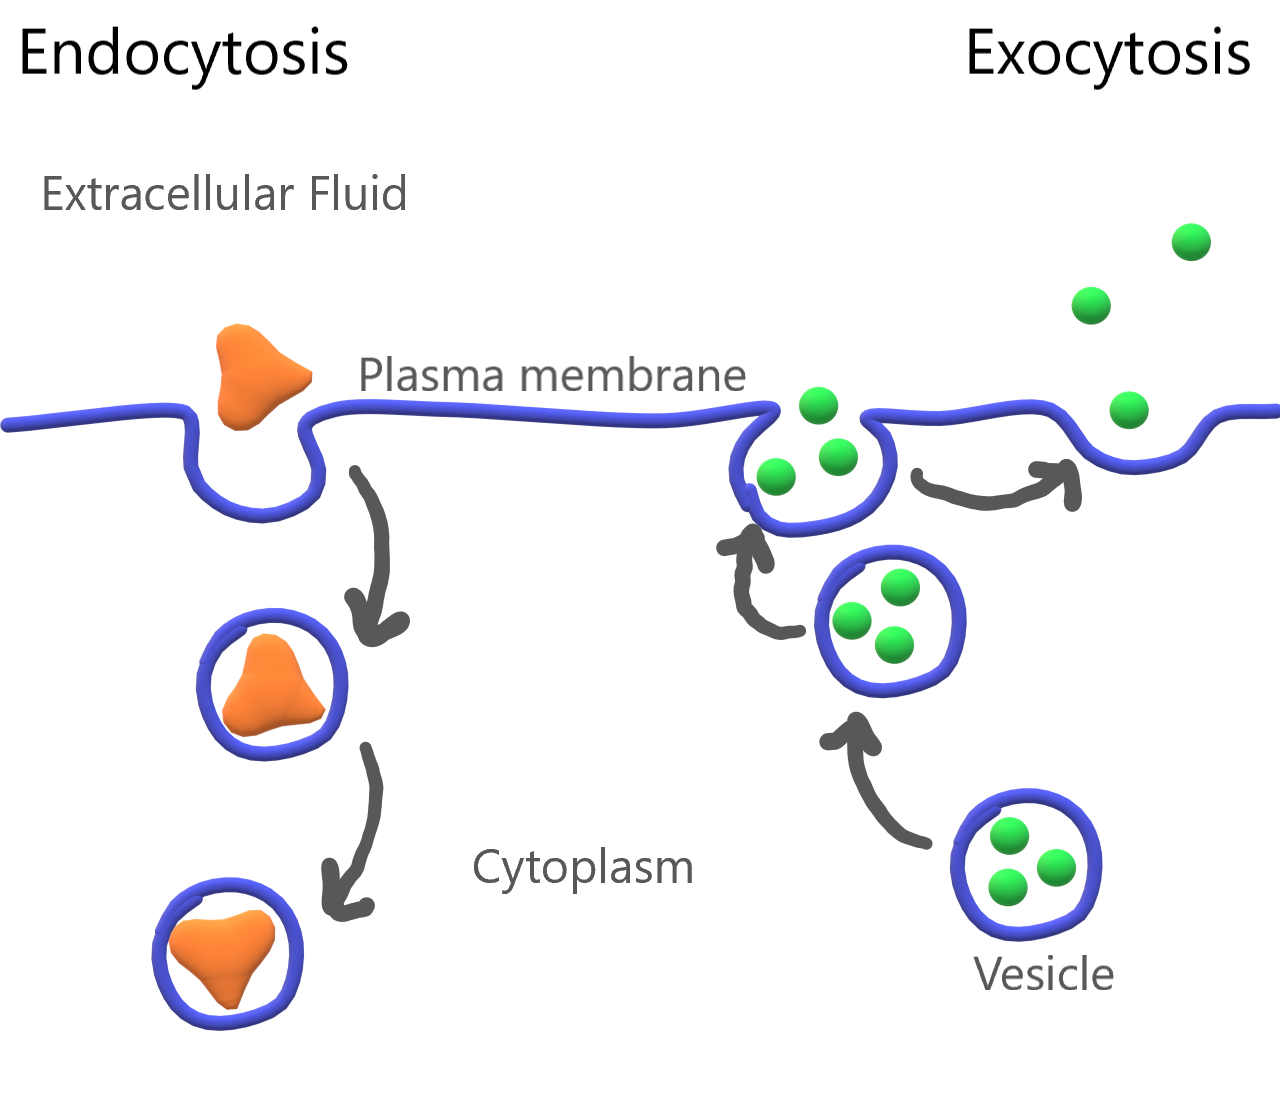 Image shows a diagram of both endocytosis and exocytosis. On the left side of the diagram, and large particle is being brought into the cell by creating a pocket of plasma membrane around the particle. This pocket deepens and eventually pinches off from the rest of the membrane, forming a vesicle containing the particle. This process is called endocytosis. On the right side of the diagram, a vesicle containing substances for export out of the cell are contained in a vesicle. The vesicle travels to the cell membrane and the vesicular membrane fuses with the cell membrane, releasing the contents of the vesicle outside of the cell.